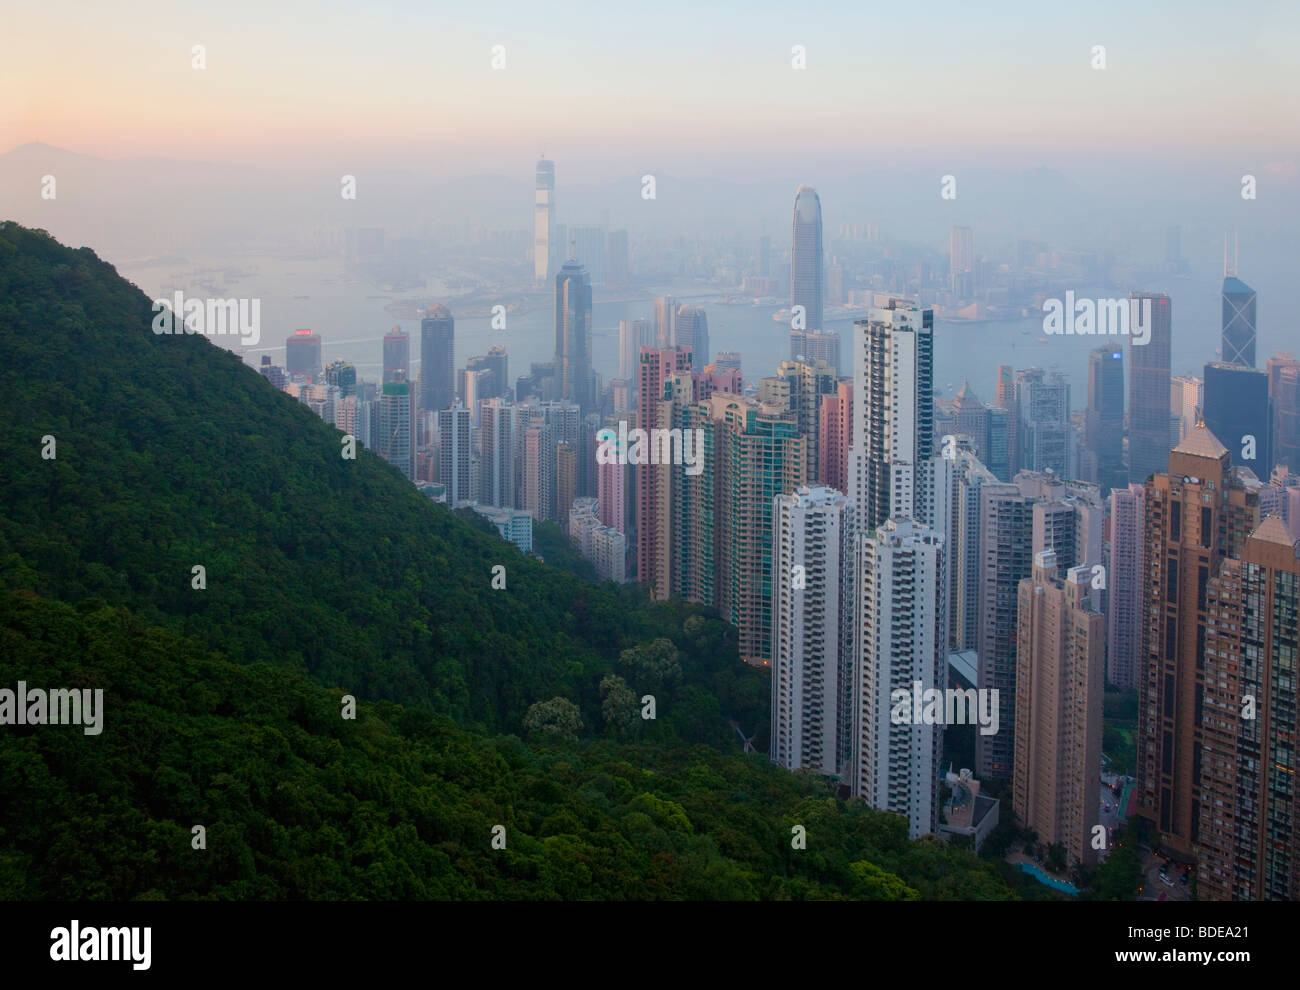 Vue depuis le pic, Shan Teng, Hong Kong, Chine. Photo Stock